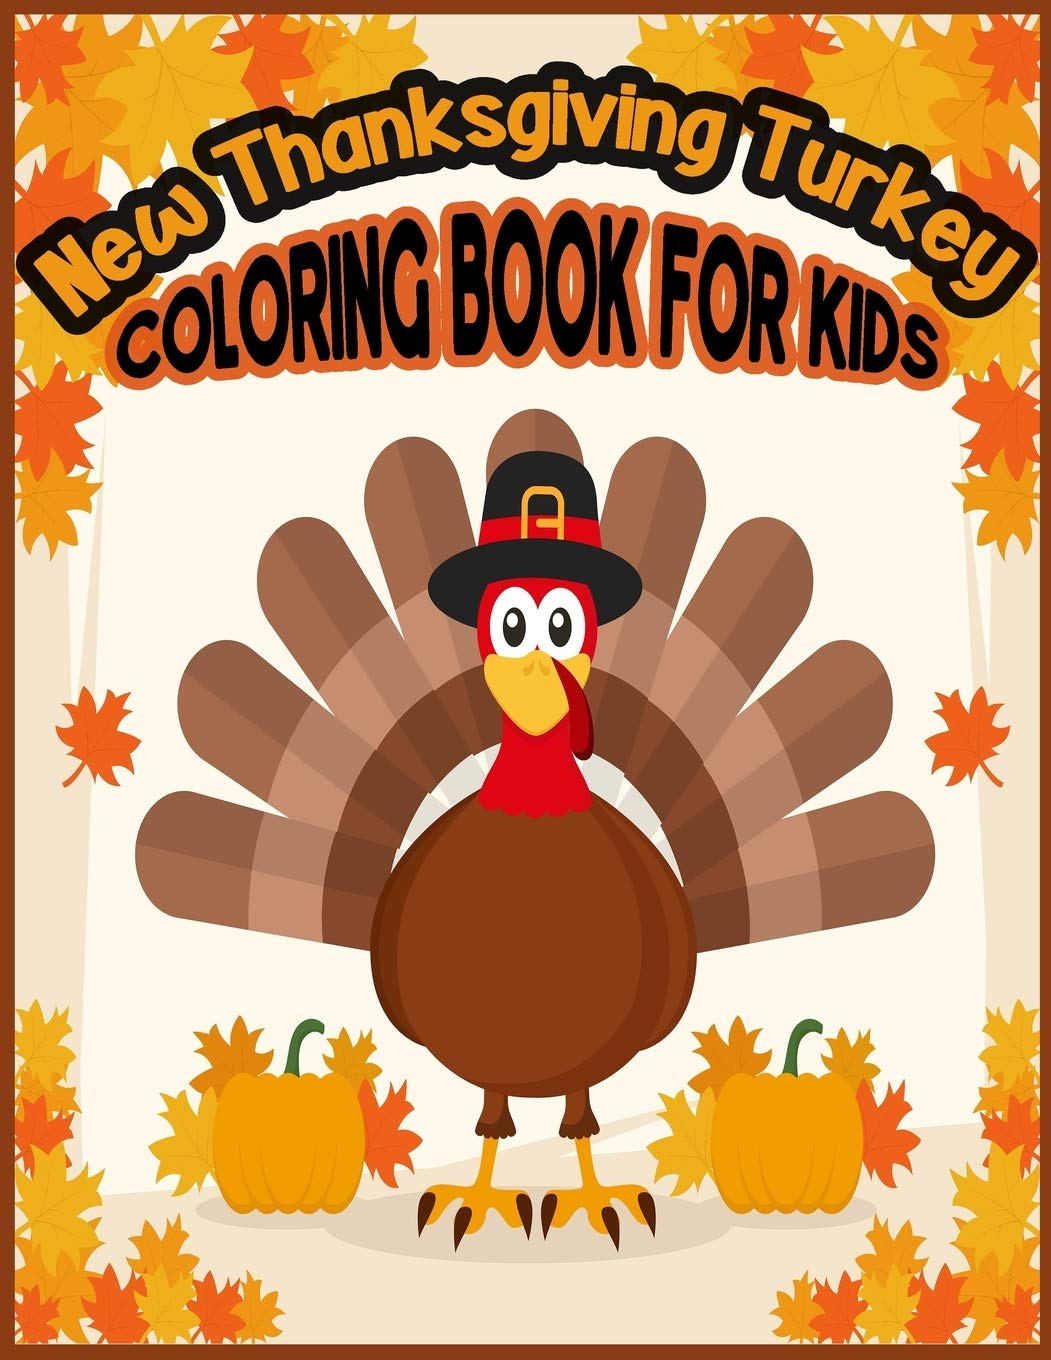 New Thanksgiving Turkey Coloring Book For Kids A Collection Of Fun And Easy Happy Thanksgiving Turkey Coloring Pages For Kids Toddlers And Preschool Publication Th 9781710213515 Amazon Com Books